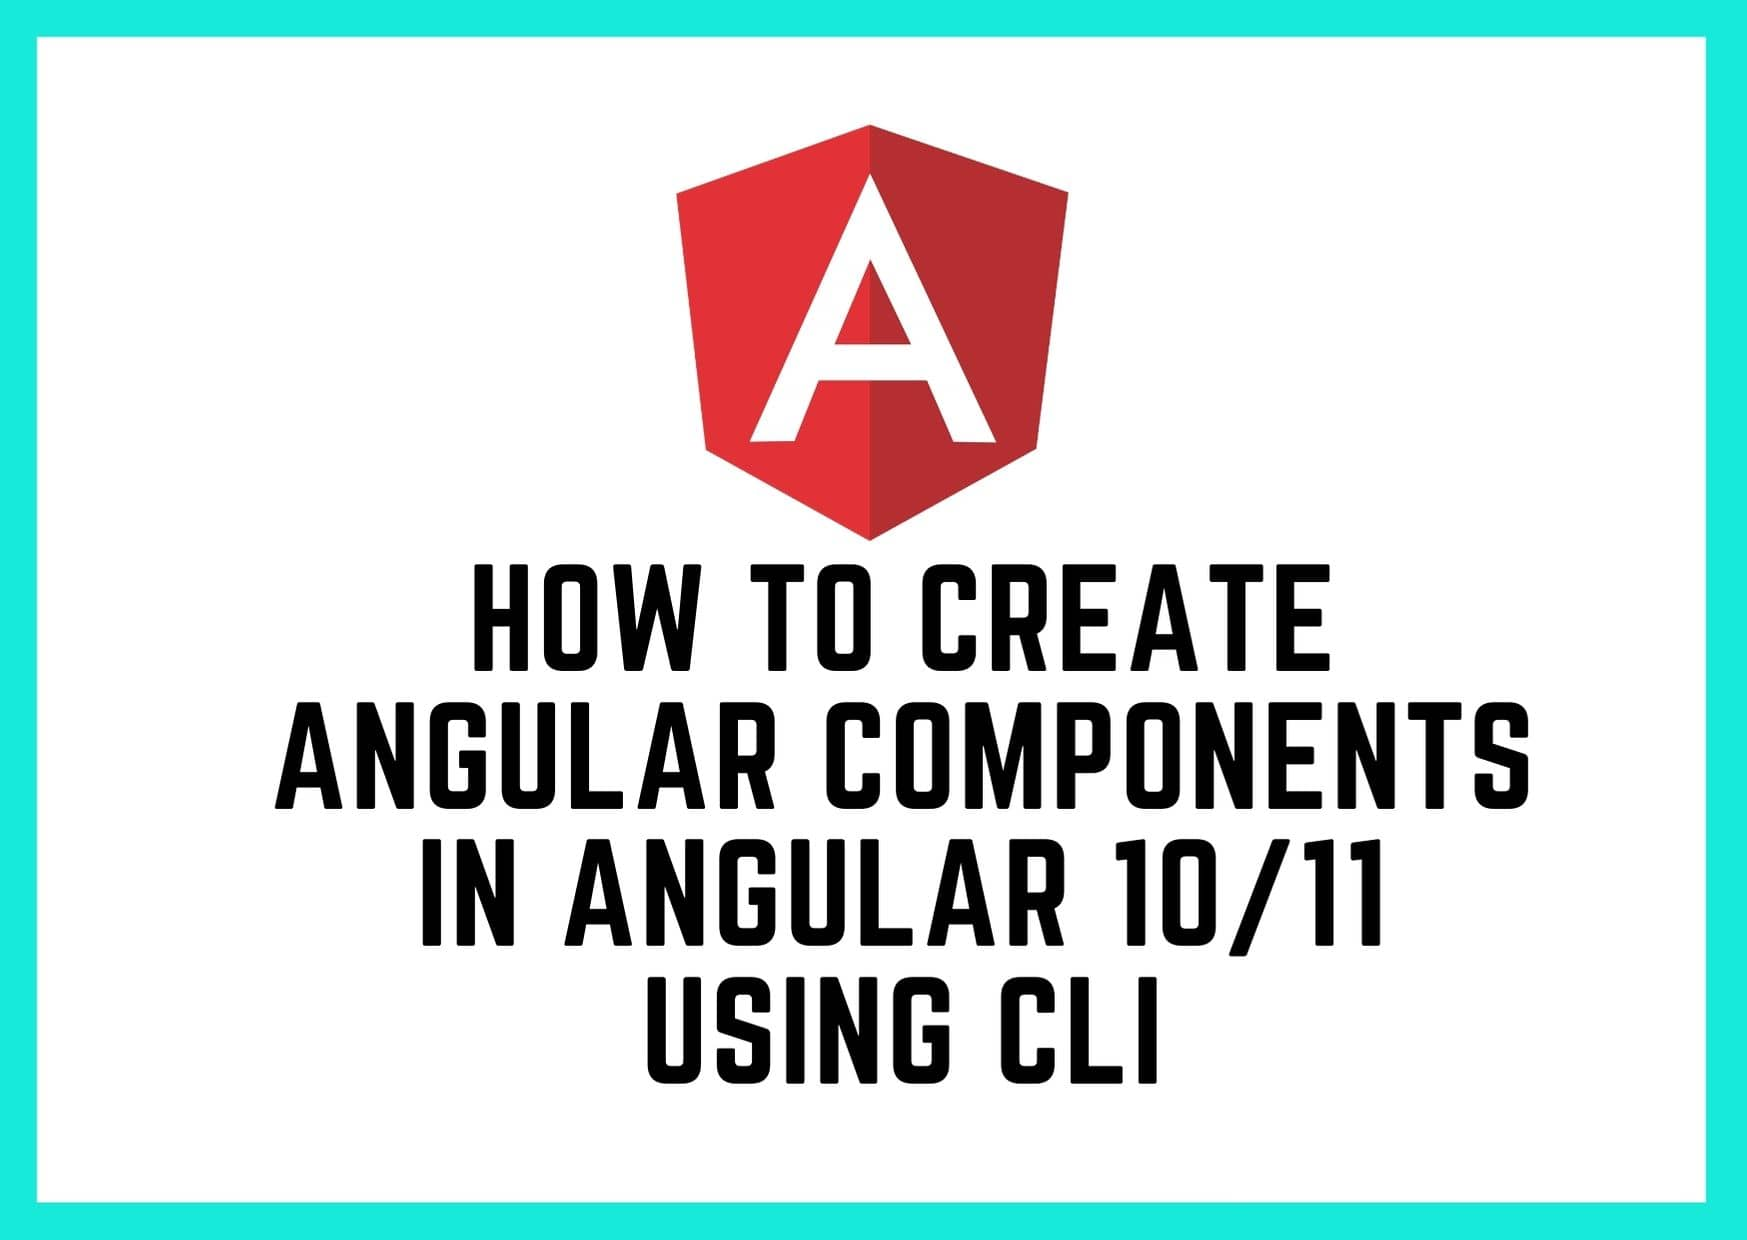 How To Create Angular Components in Angular 10/11 using CLI